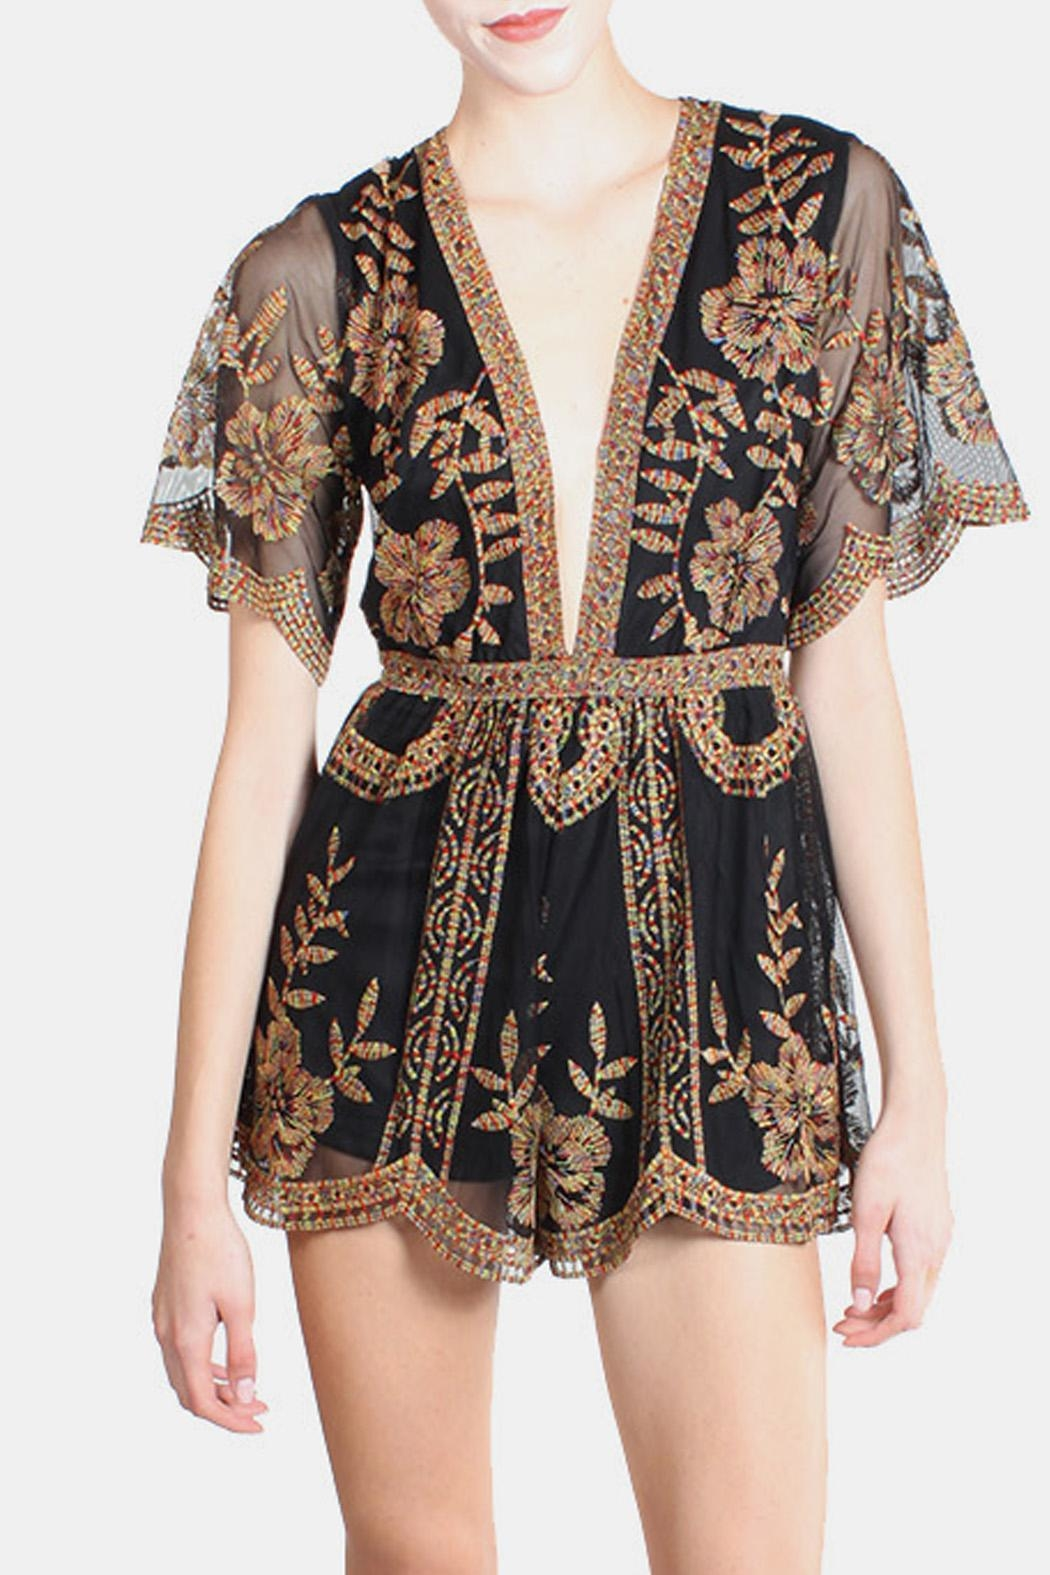 Honey Punch Multicolored Butterfly Lace Romper - Front Full Image